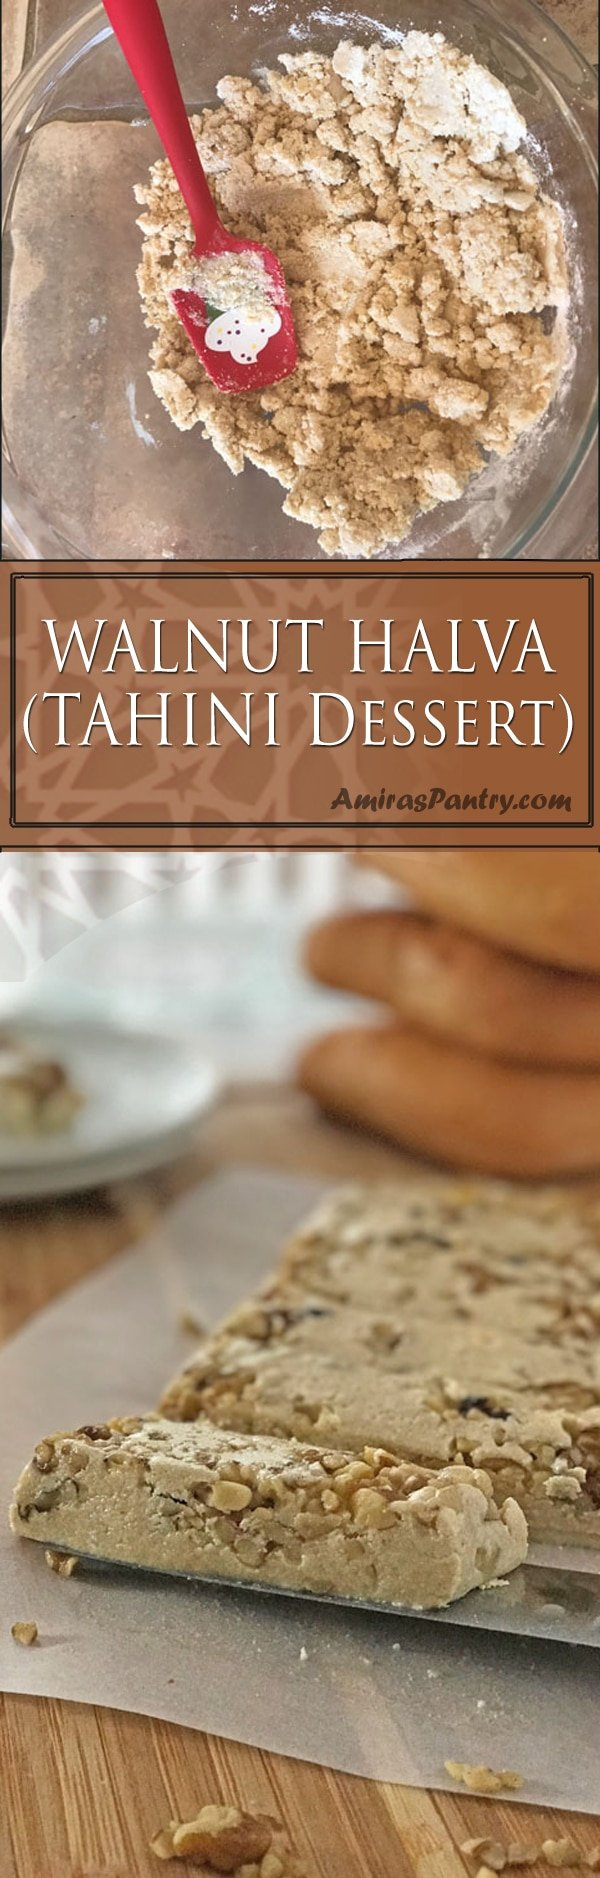 Halawa is a sweet tahini Middle Eastern dessert, that can be crumbled on breads or used as a fun topping for desserts. Hawala can be even enjoyed straight.